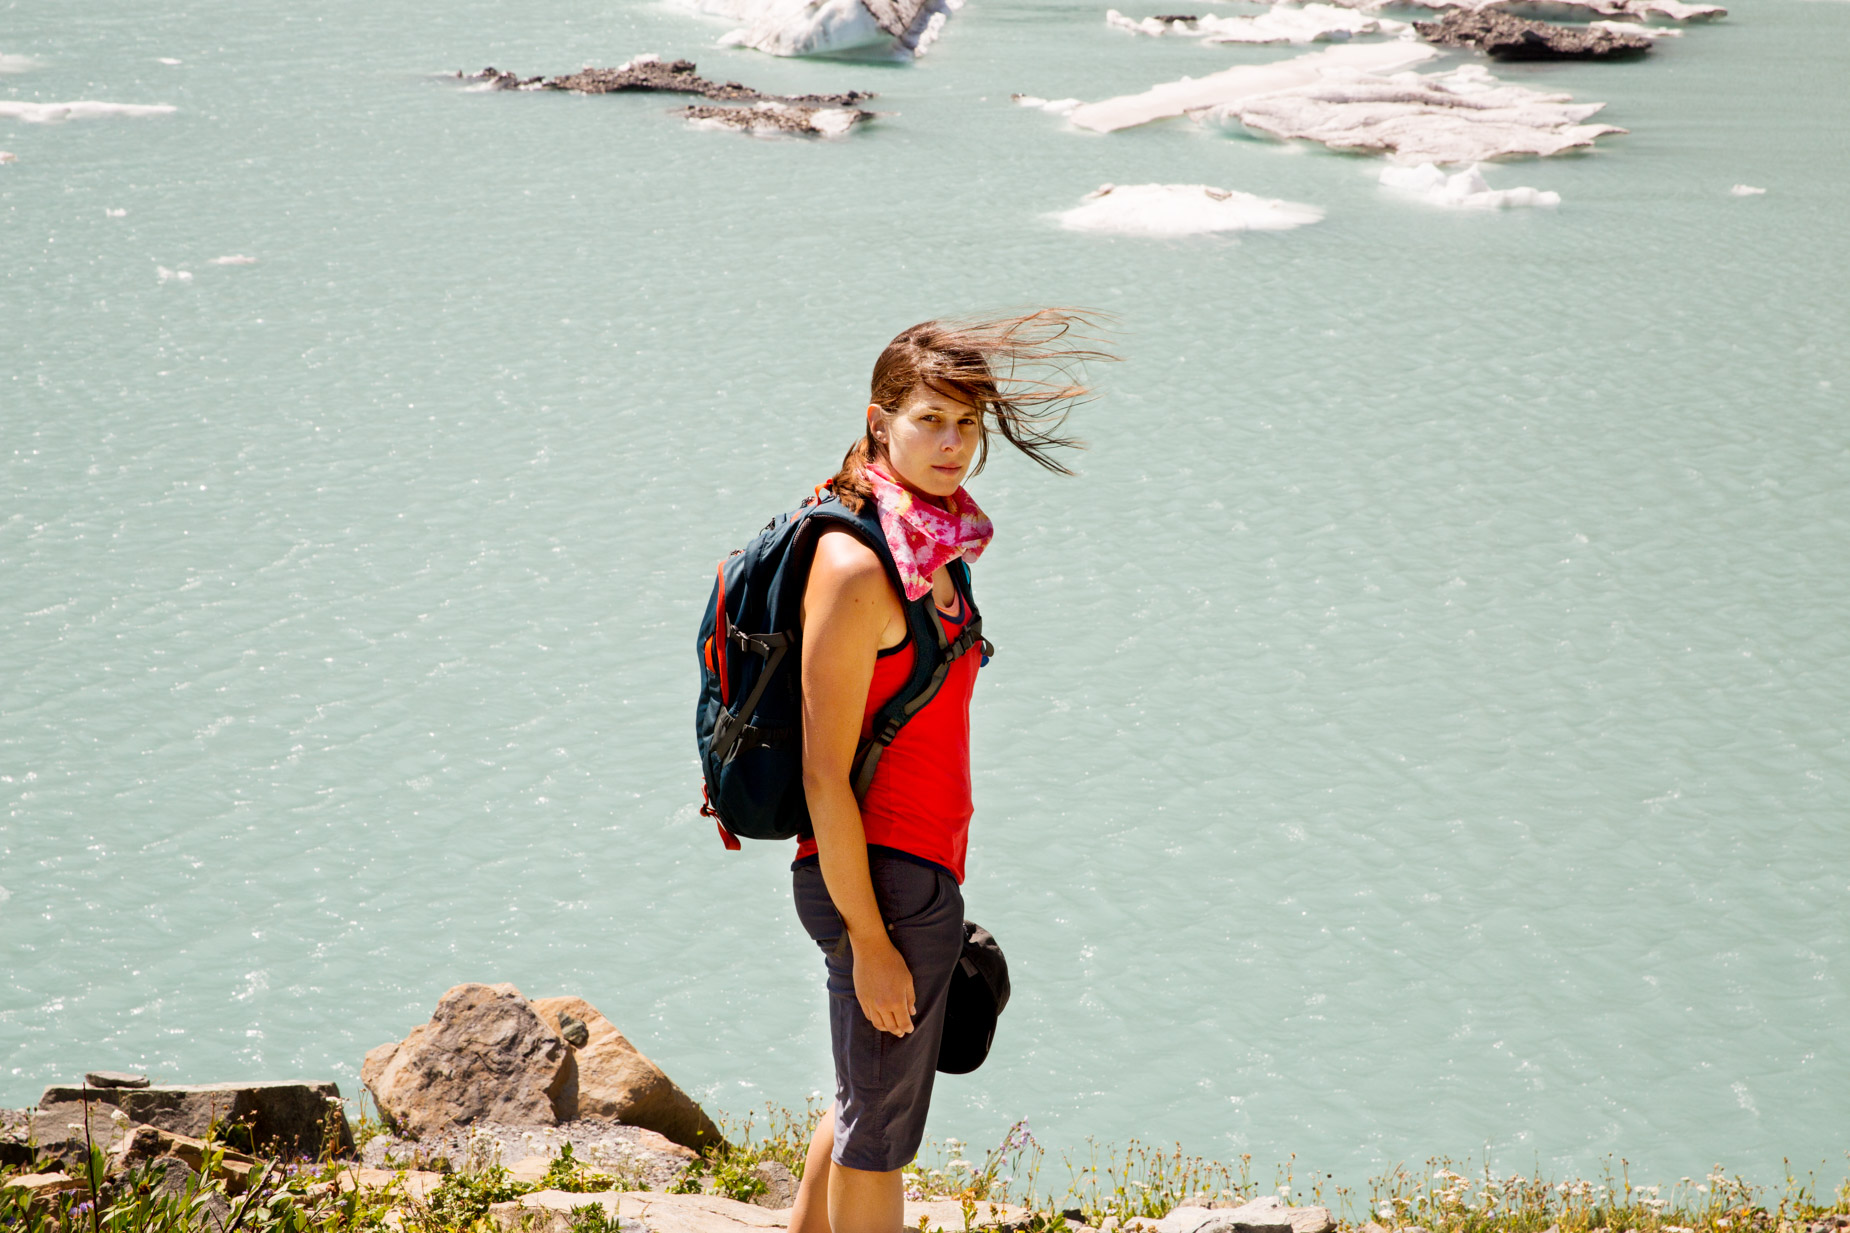 alex_aristei_Glacier_004